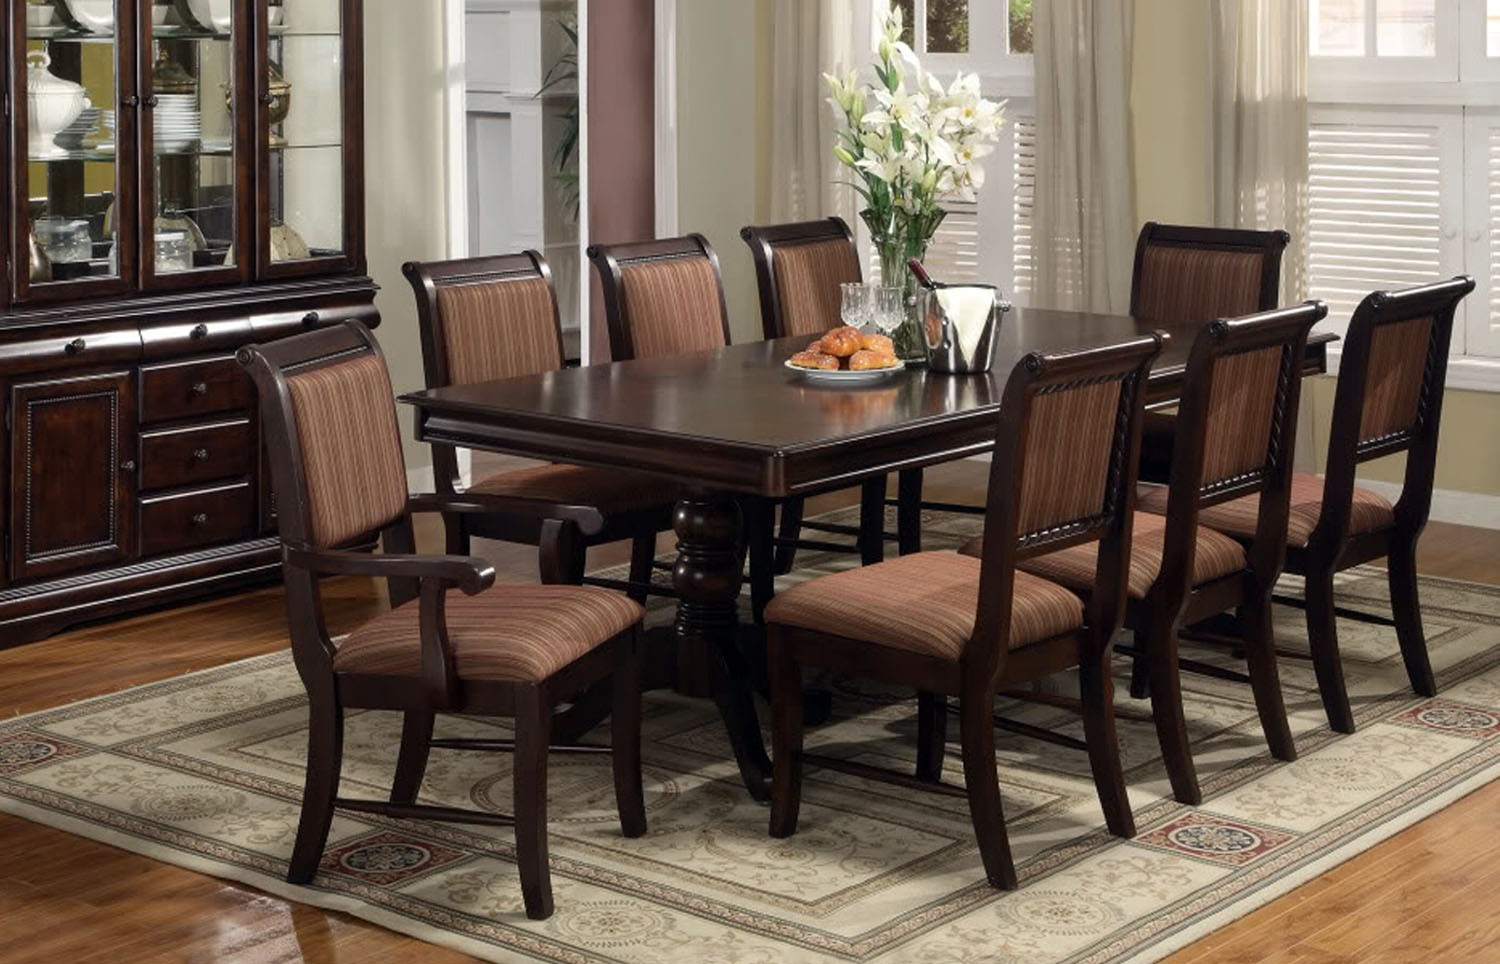 dining room table sets with smart design for dining room home decorators HXVAIZK